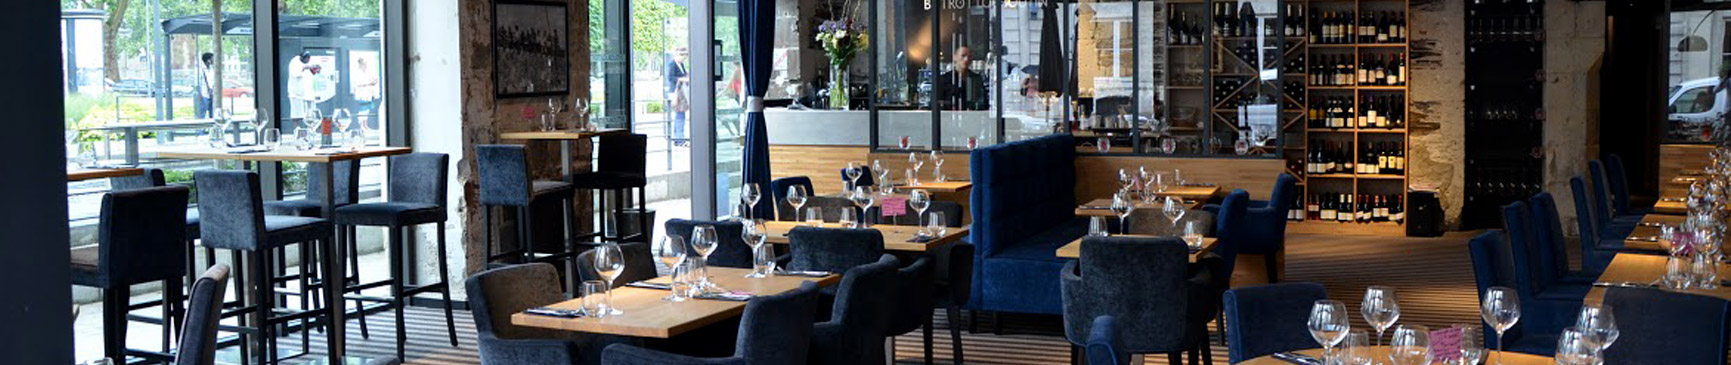 bistrot louboutin angers horaires